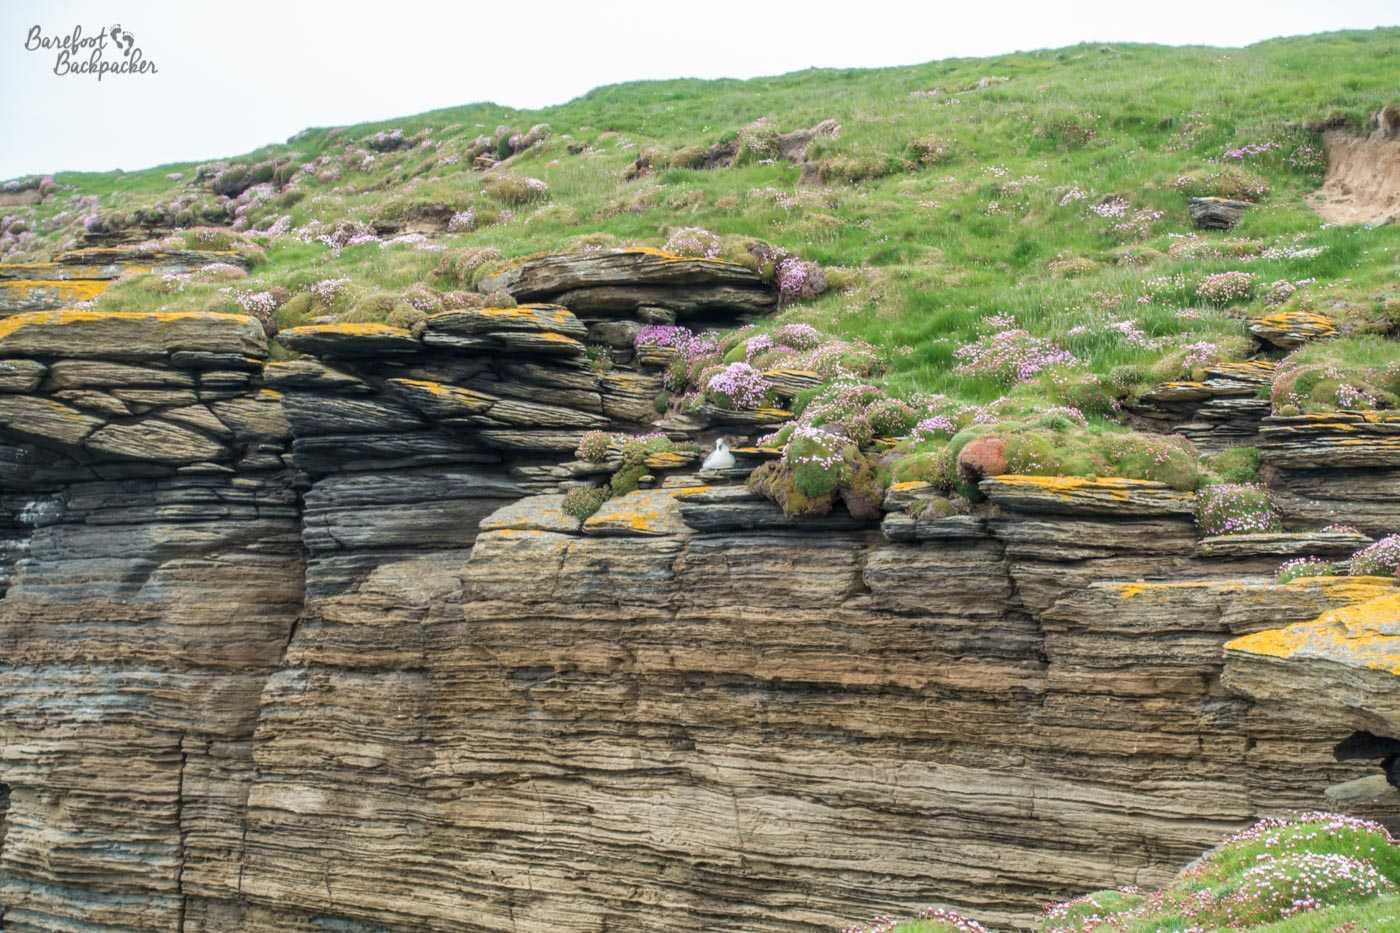 Close-up of the cliffs on Westray. The lines of the rock can be seen, as can the sheer verticalness of the cliff edge. Above the rocks is grass, shrubbery, and some purple flowers on a steep slope. In the center of the shot, on top of one of the flat rocks that make up the cliff, is a bird.